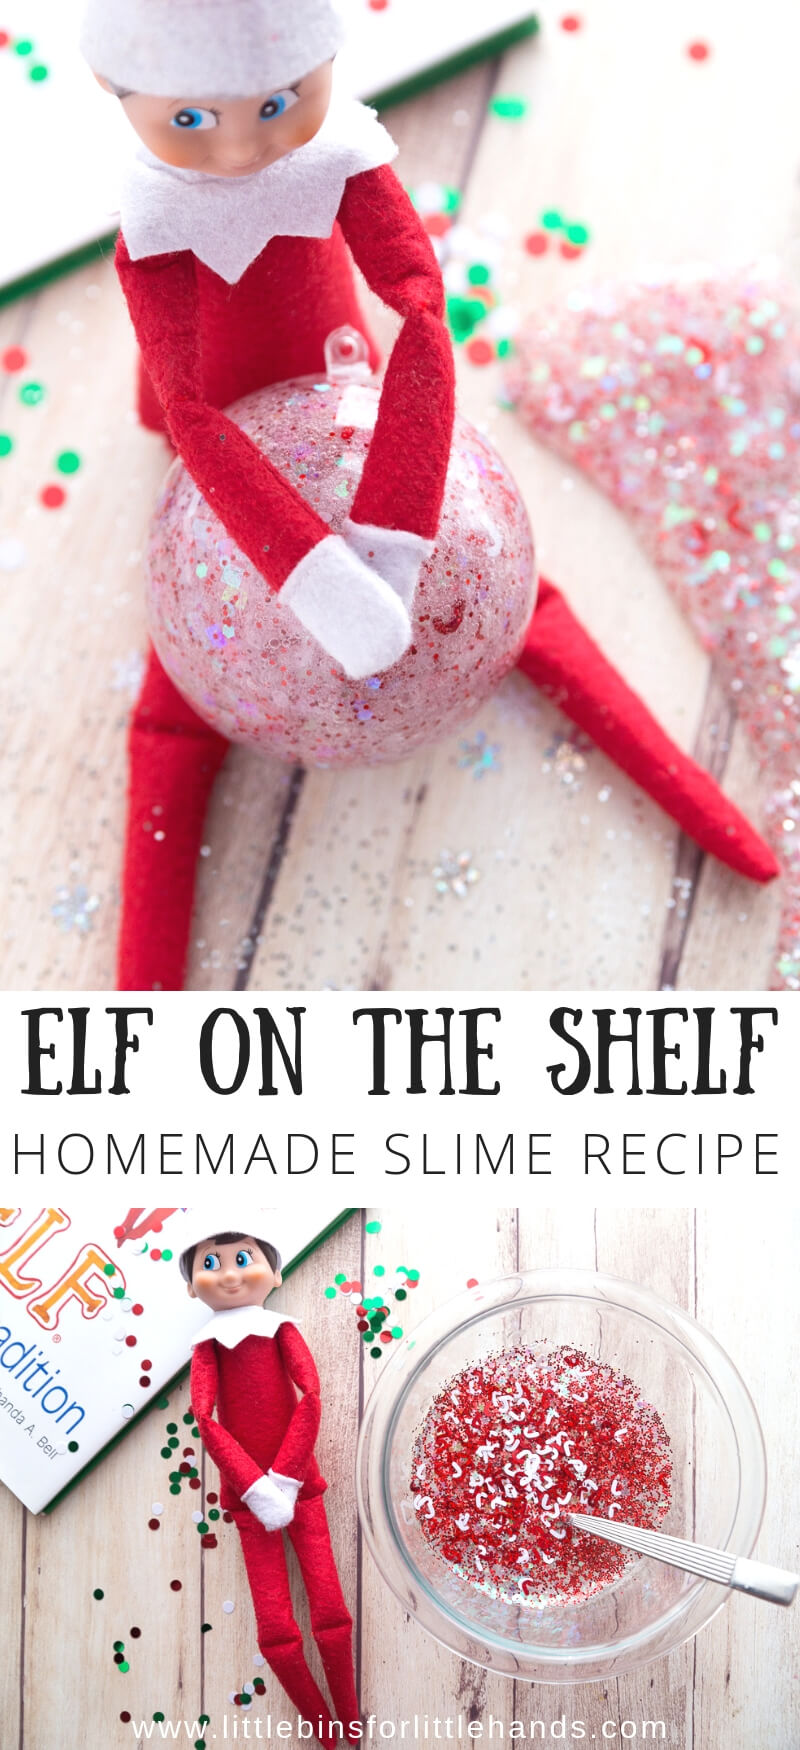 Learn how to make Elf on the Shelf slime with Christmas confetti for a festive holiday slime activity and new favorite Elf on the shelf activity.